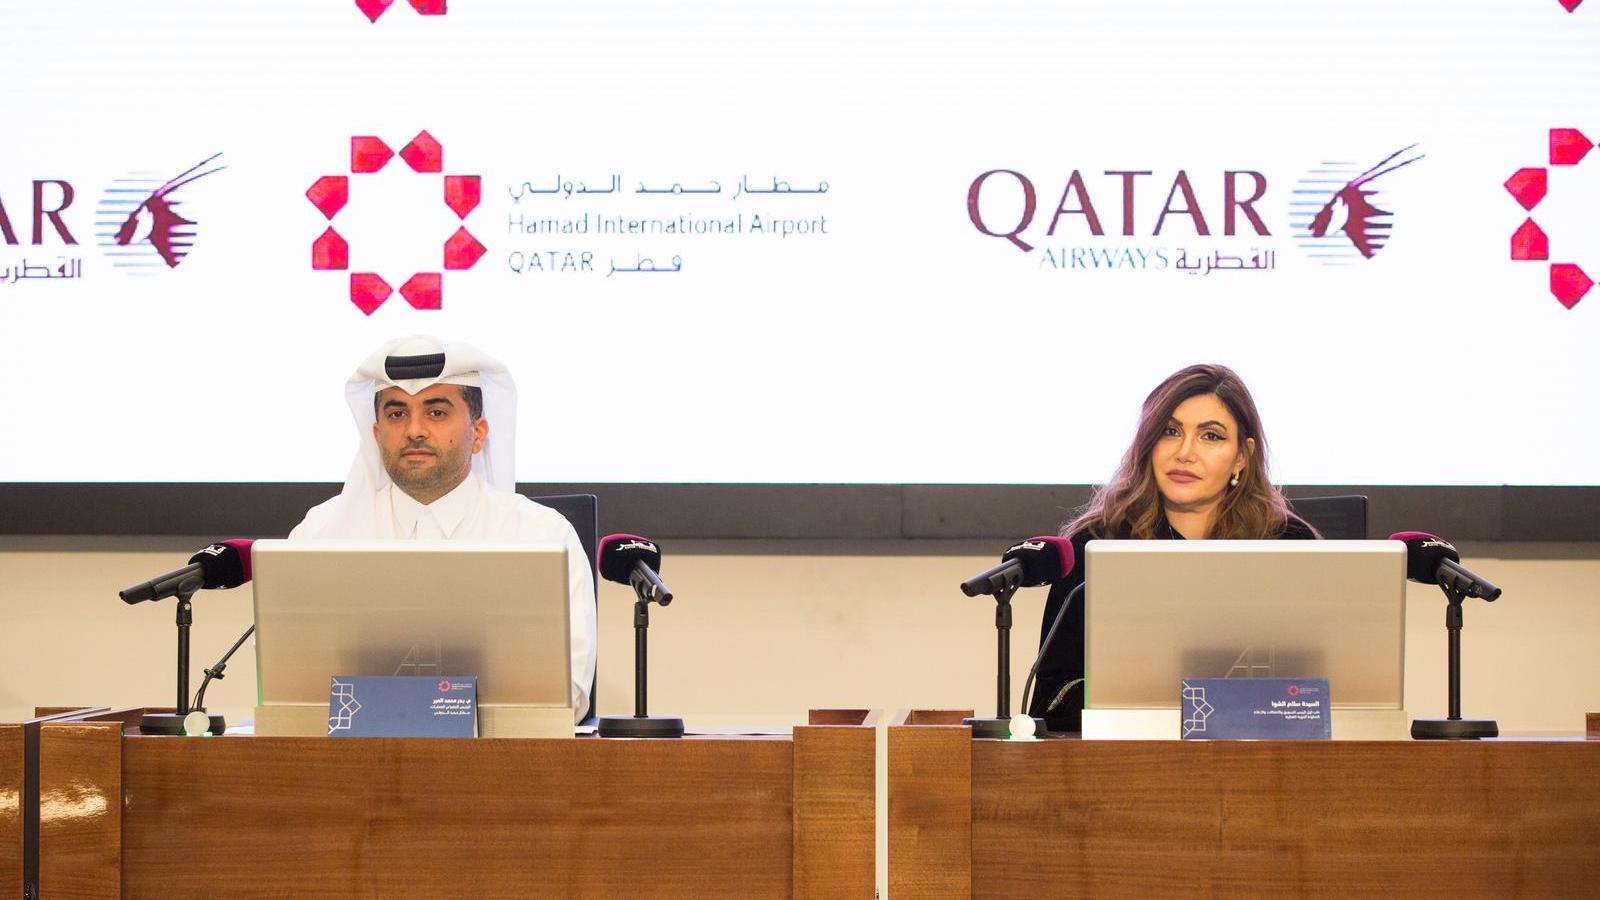 Qatar Airways and HIA announce additional measures to combat COVID-19